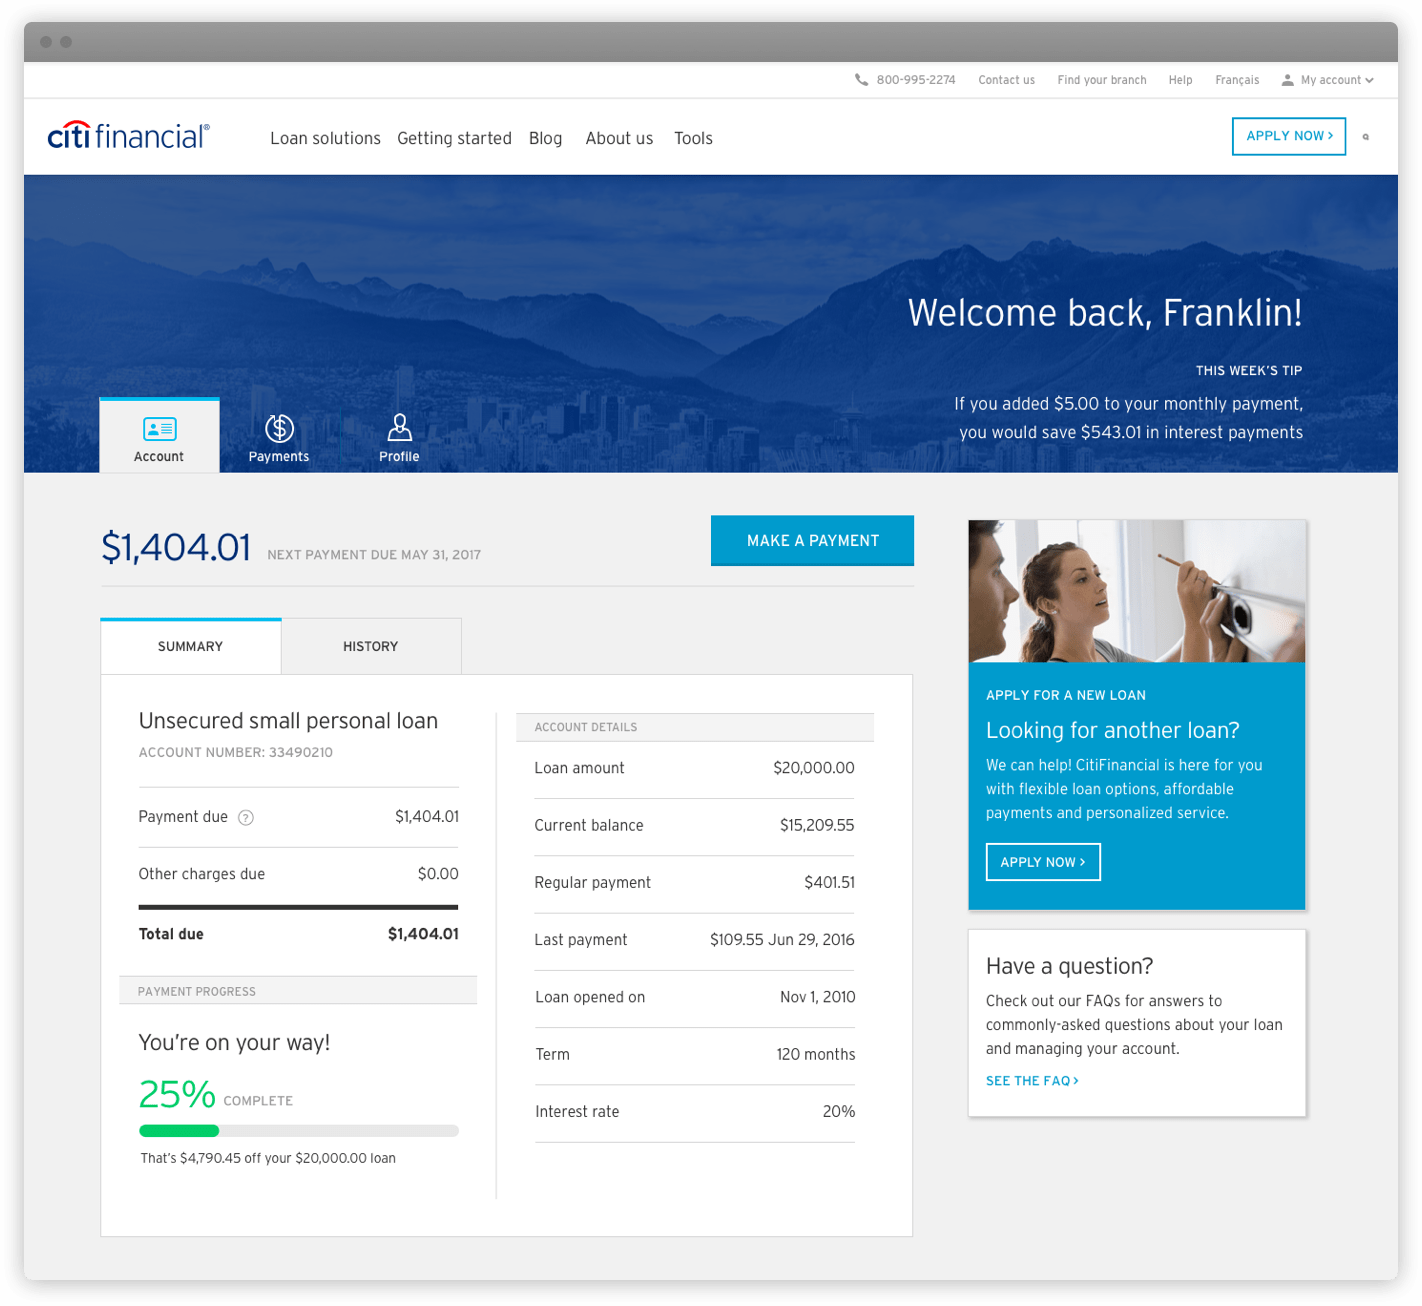 The desktop view of the account summary screen